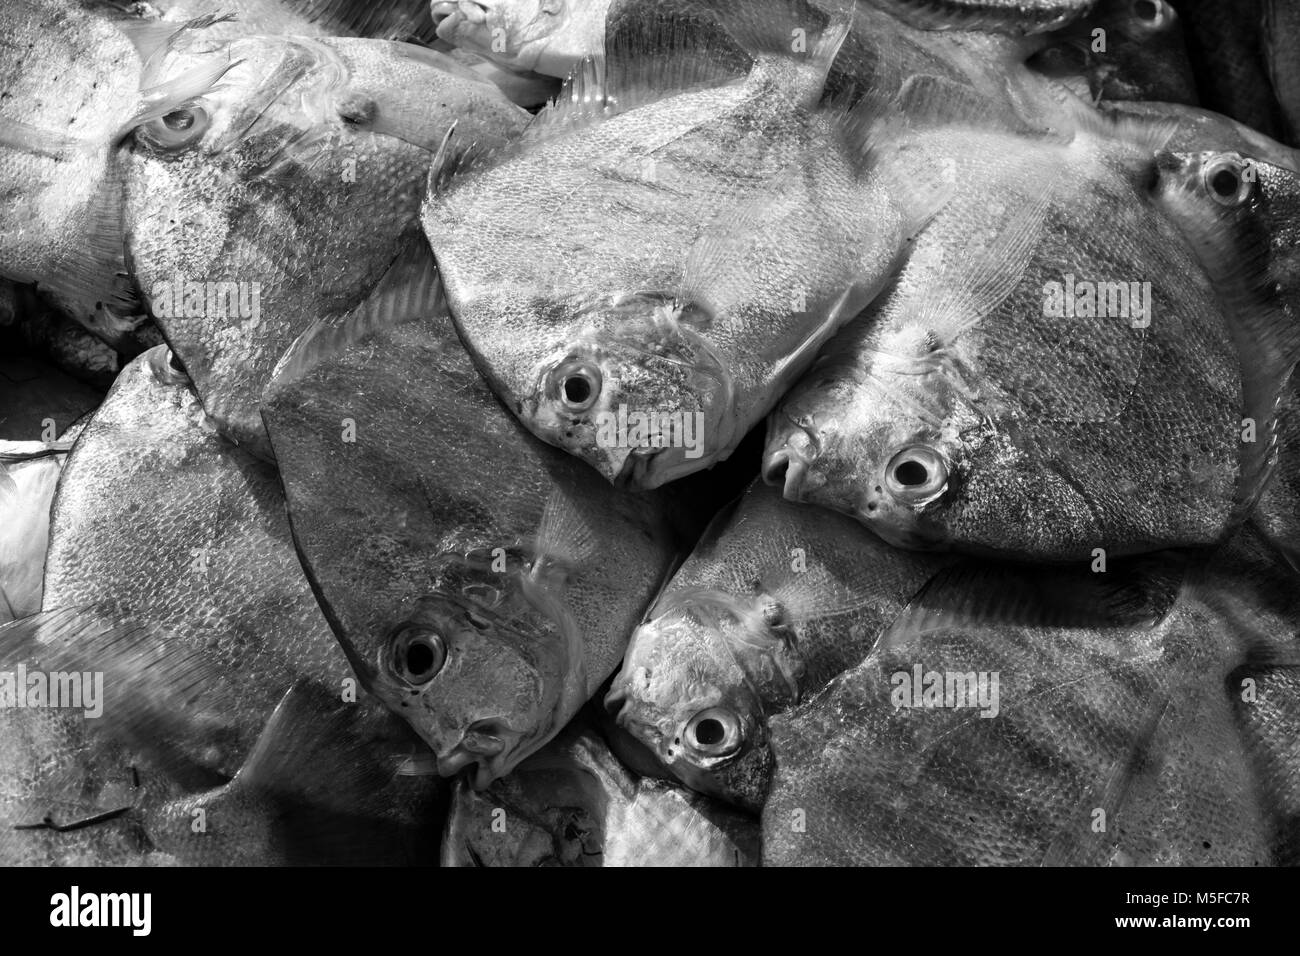 Closeup of fish on a market in Malaysia - Stock Image